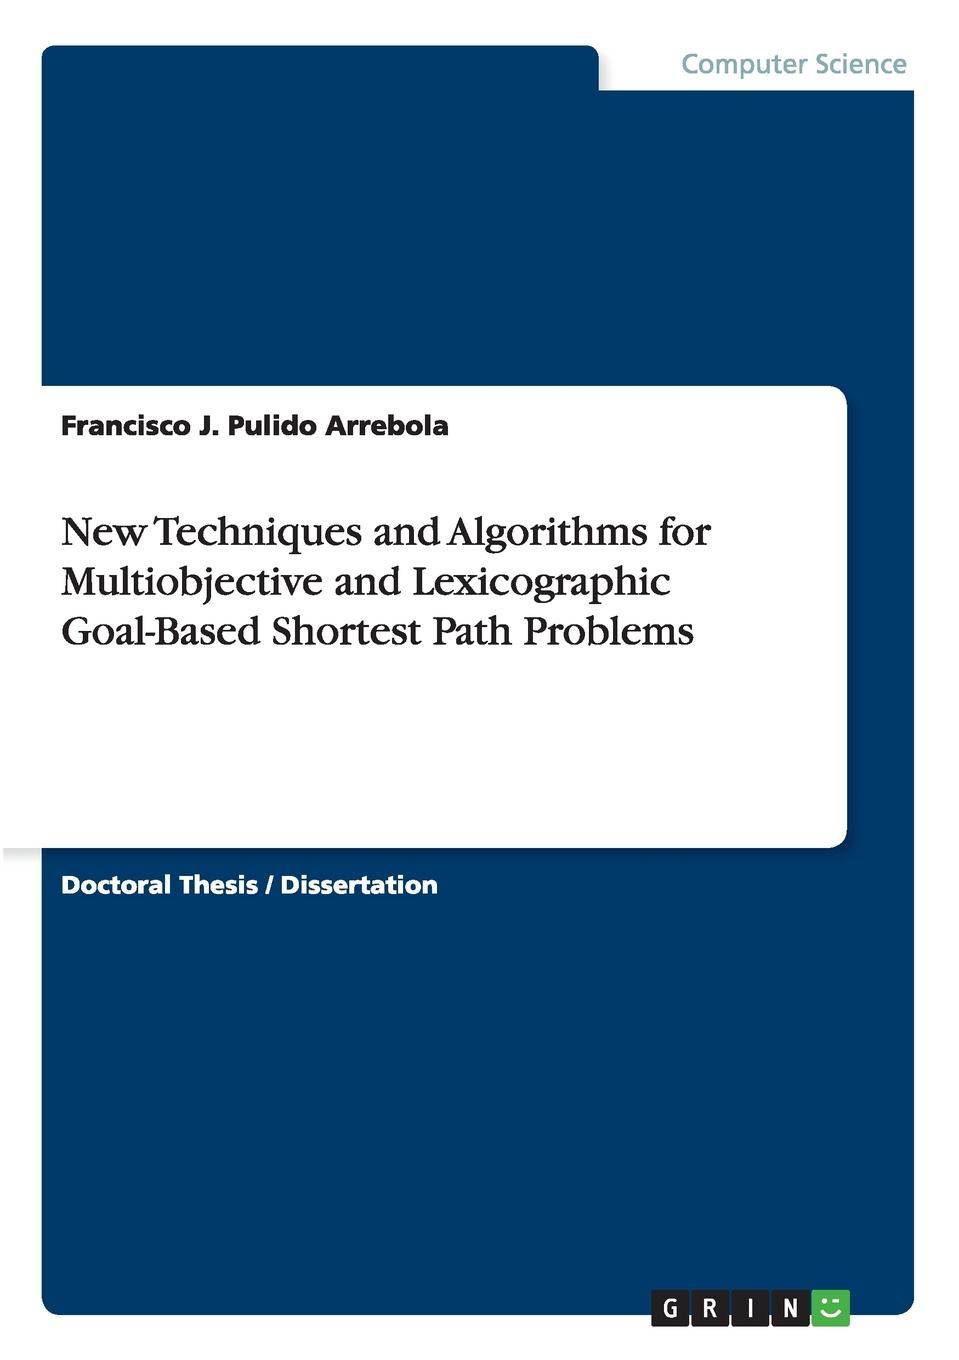 цена на Francisco J. Pulido Arrebola New Techniques and Algorithms for Multiobjective and Lexicographic Goal-Based Shortest Path Problems